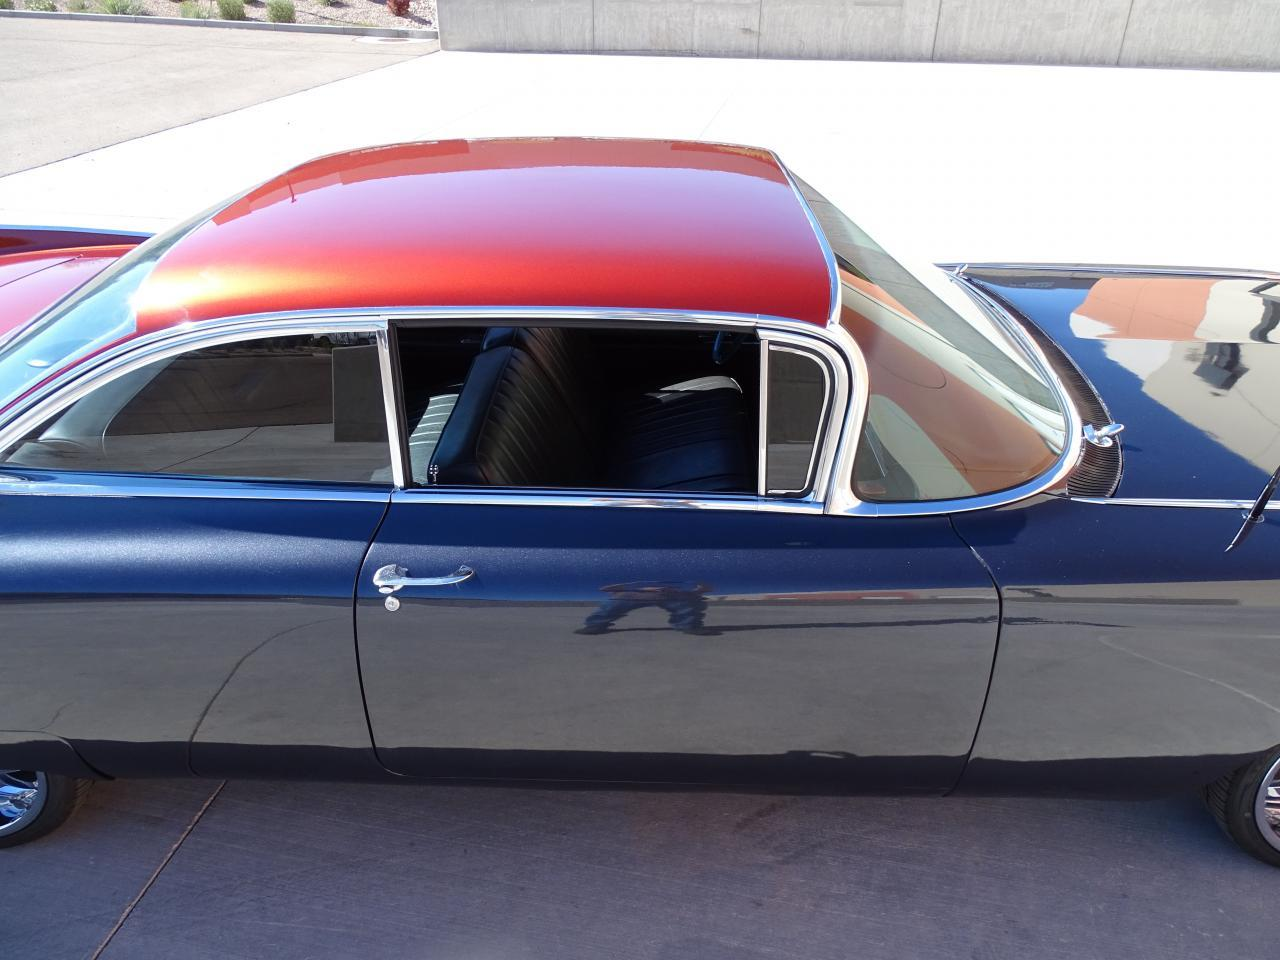 Large Picture of '60 Cadillac Series 62 located in Deer Valley Arizona - $51,000.00 Offered by Gateway Classic Cars - Scottsdale - MZFH